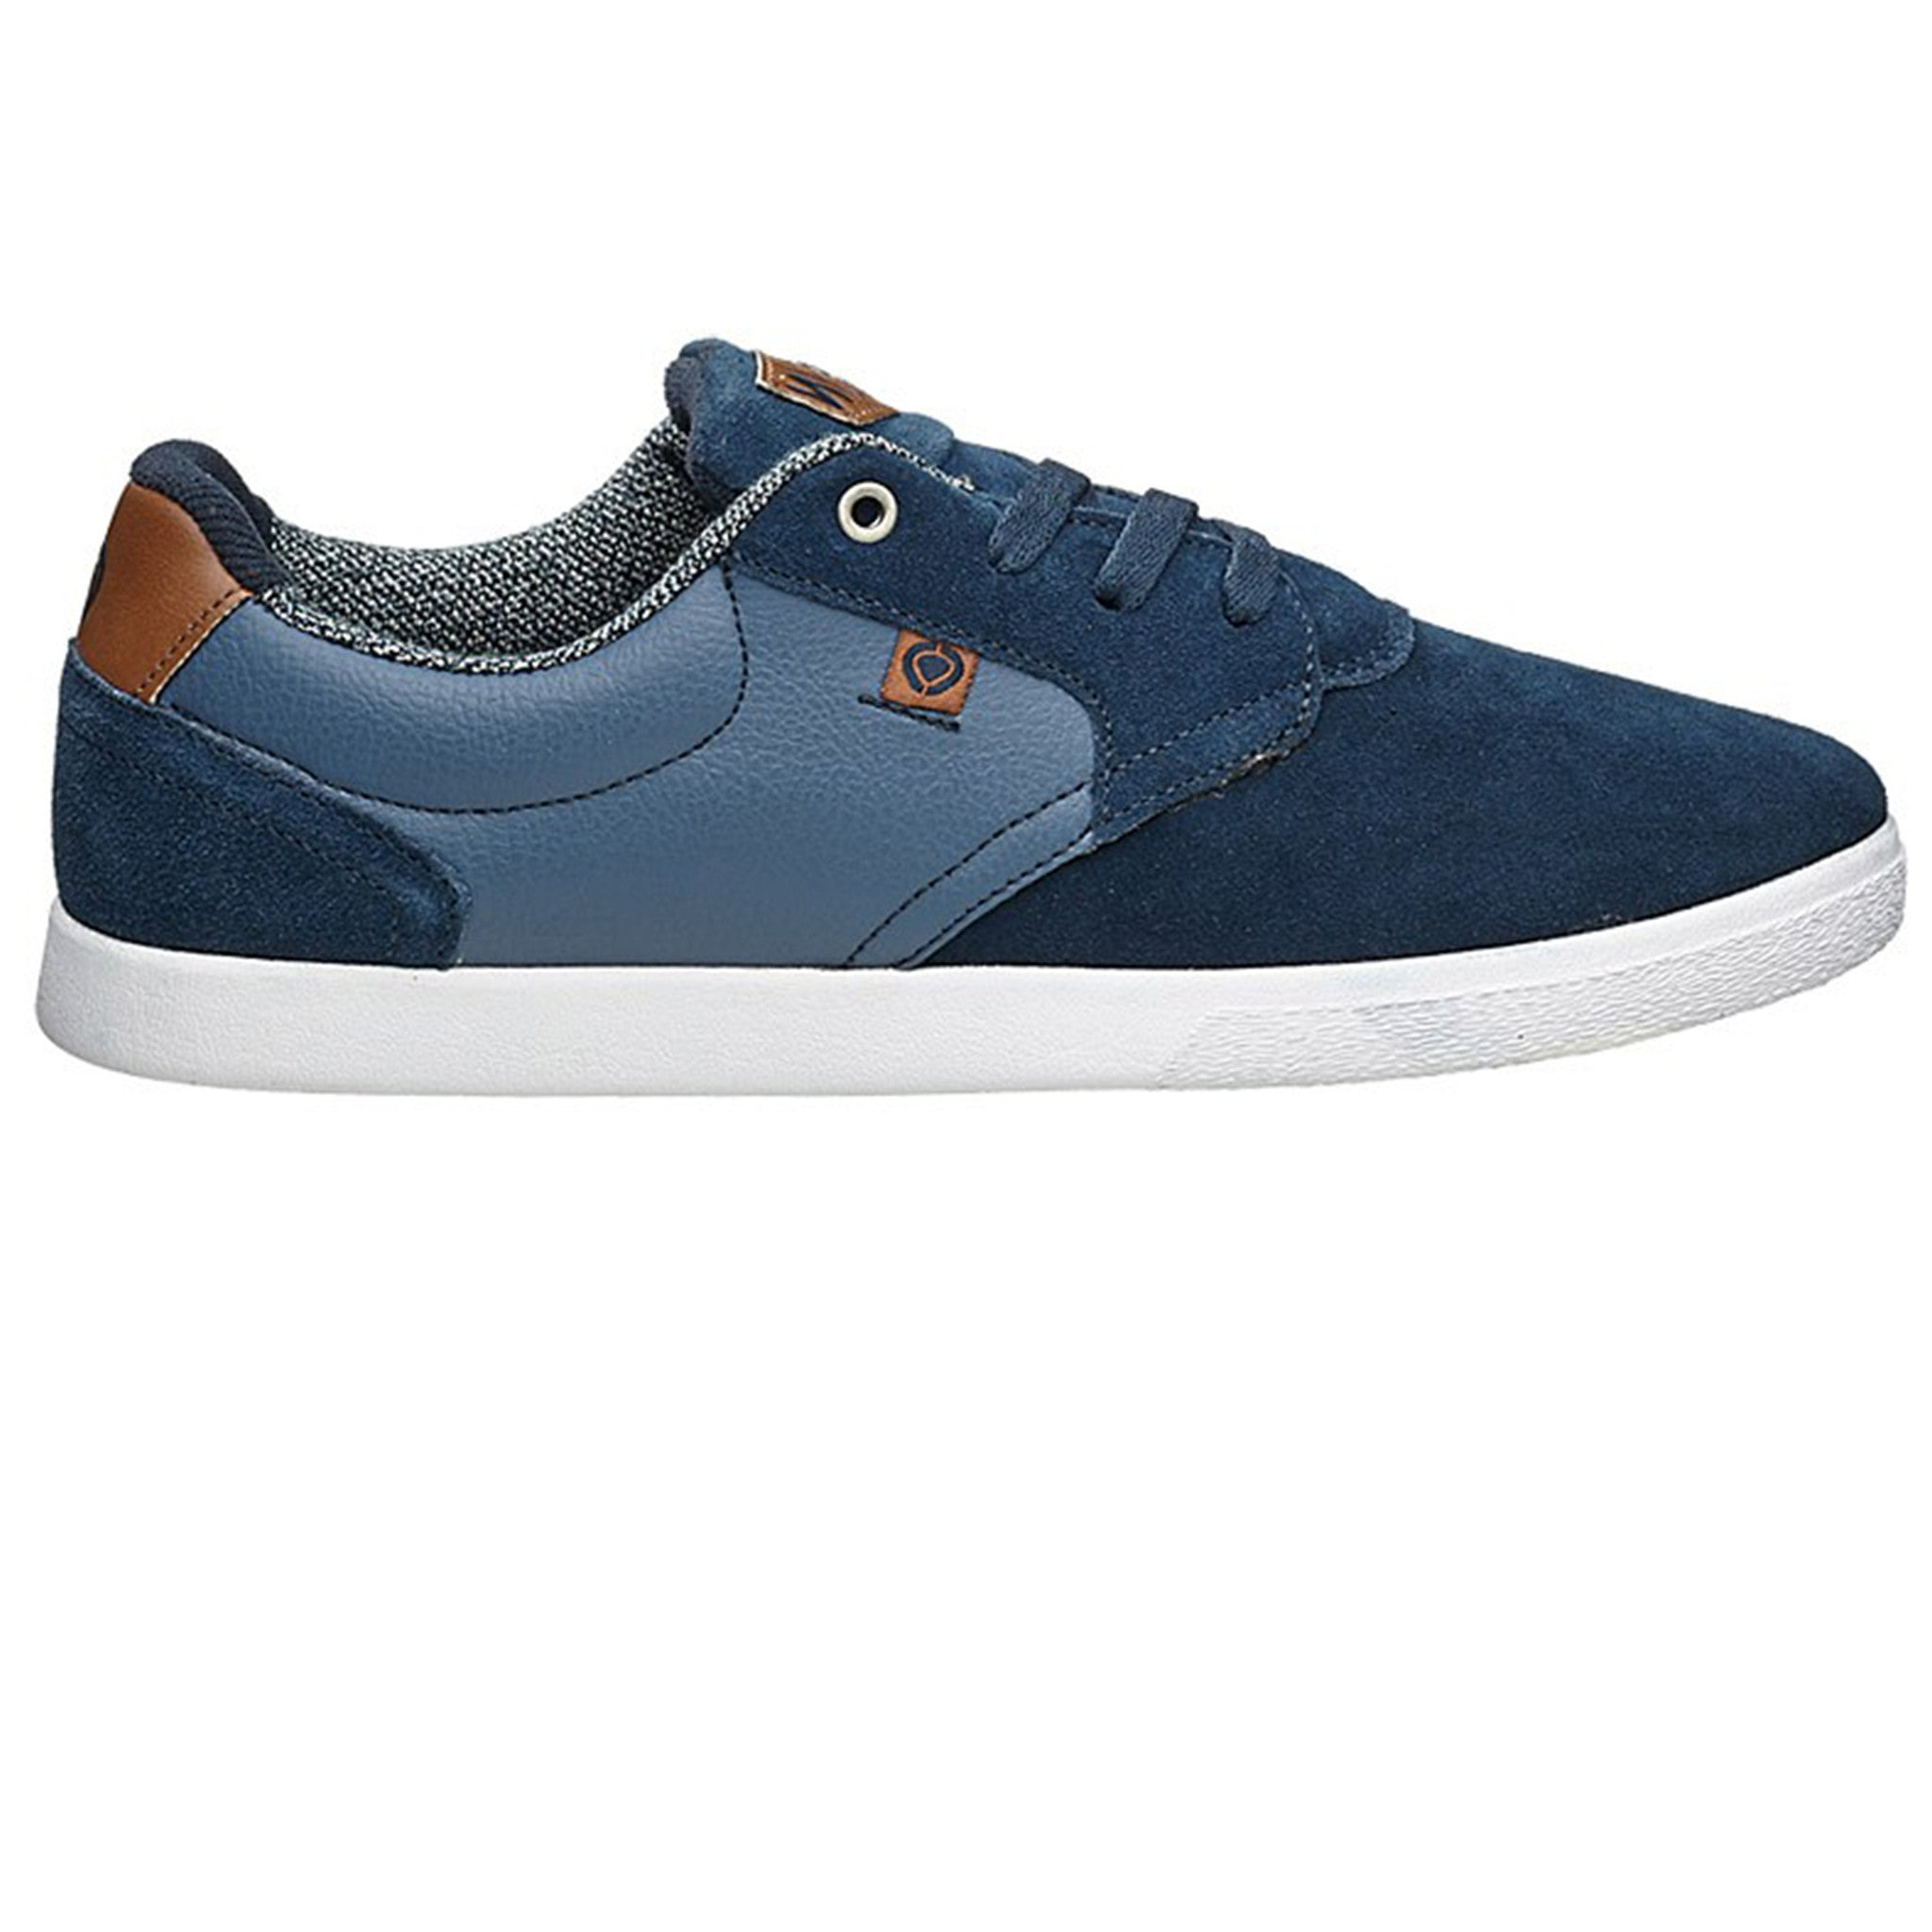 JC01 - Dress Blues - Stoked Boardshop  - 1